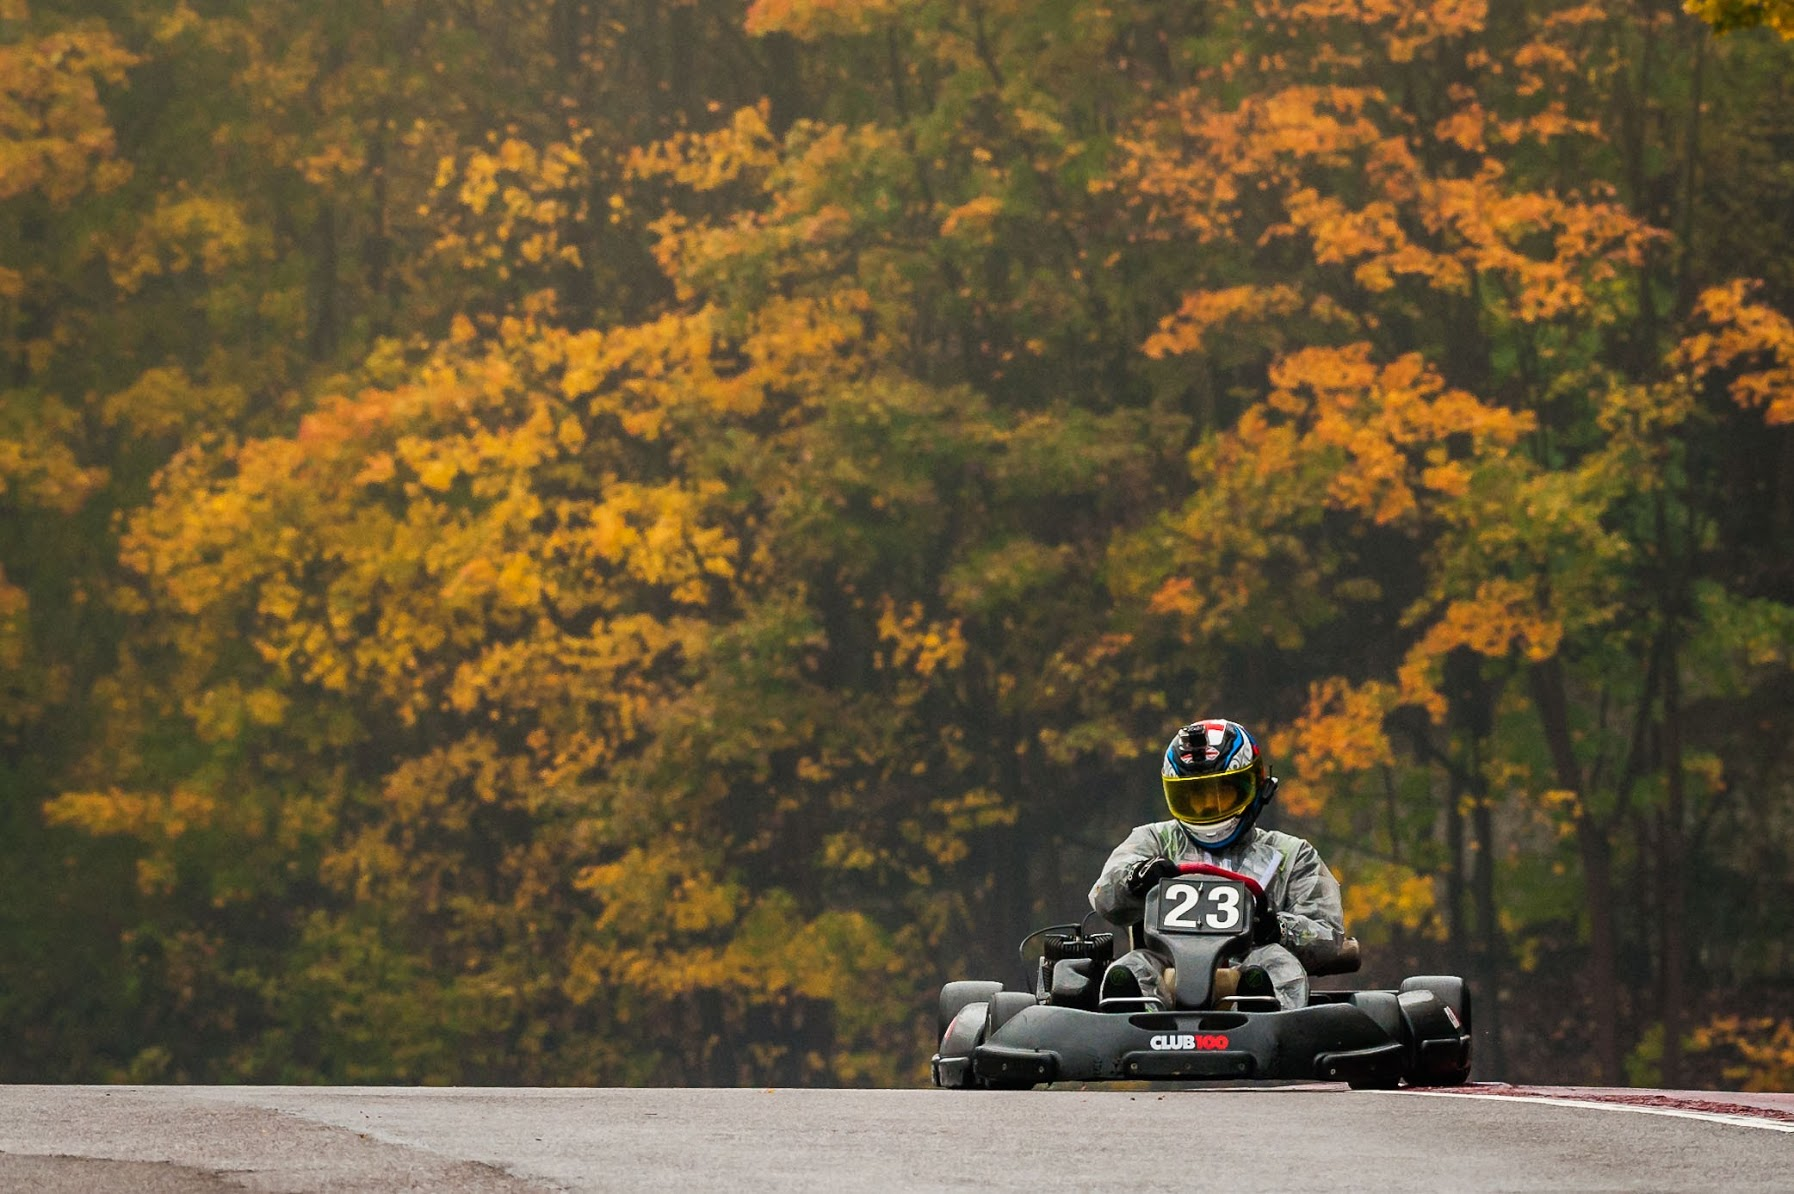 TEAMS G3PRO 2018: ROUND 11 PREVIEW – WHILTON MILL